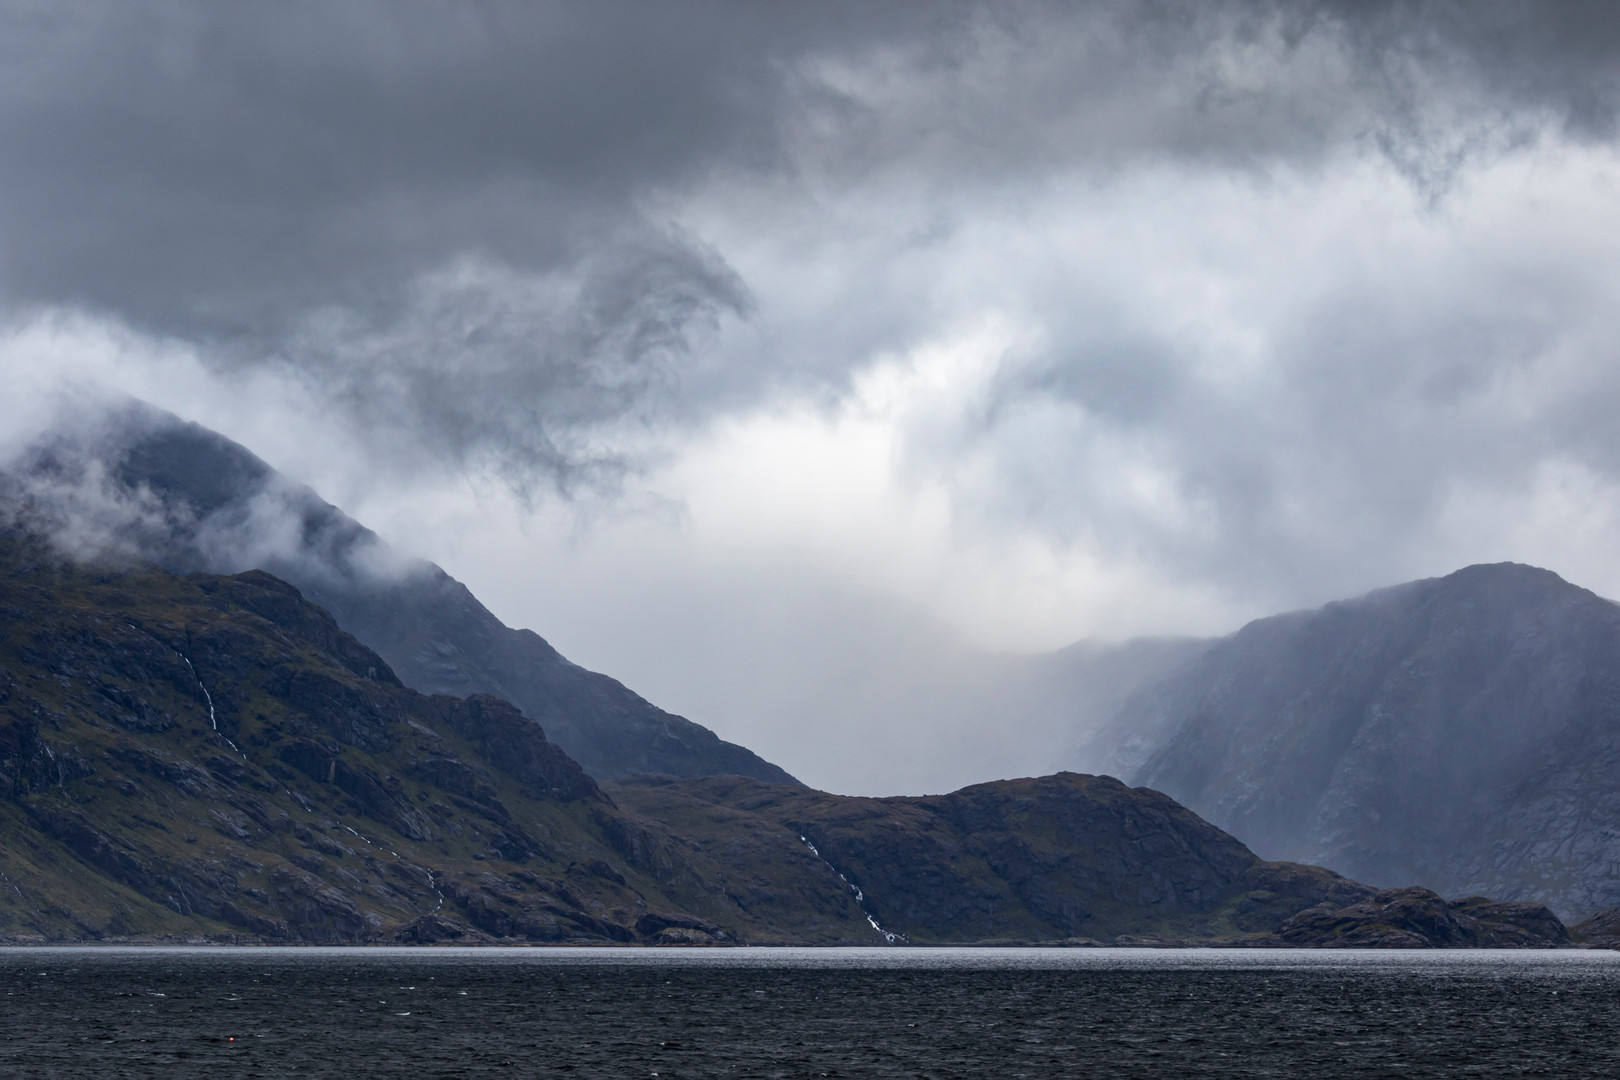 View Over Loch Scavaig from Elgol, Isle of Skye, Scotland